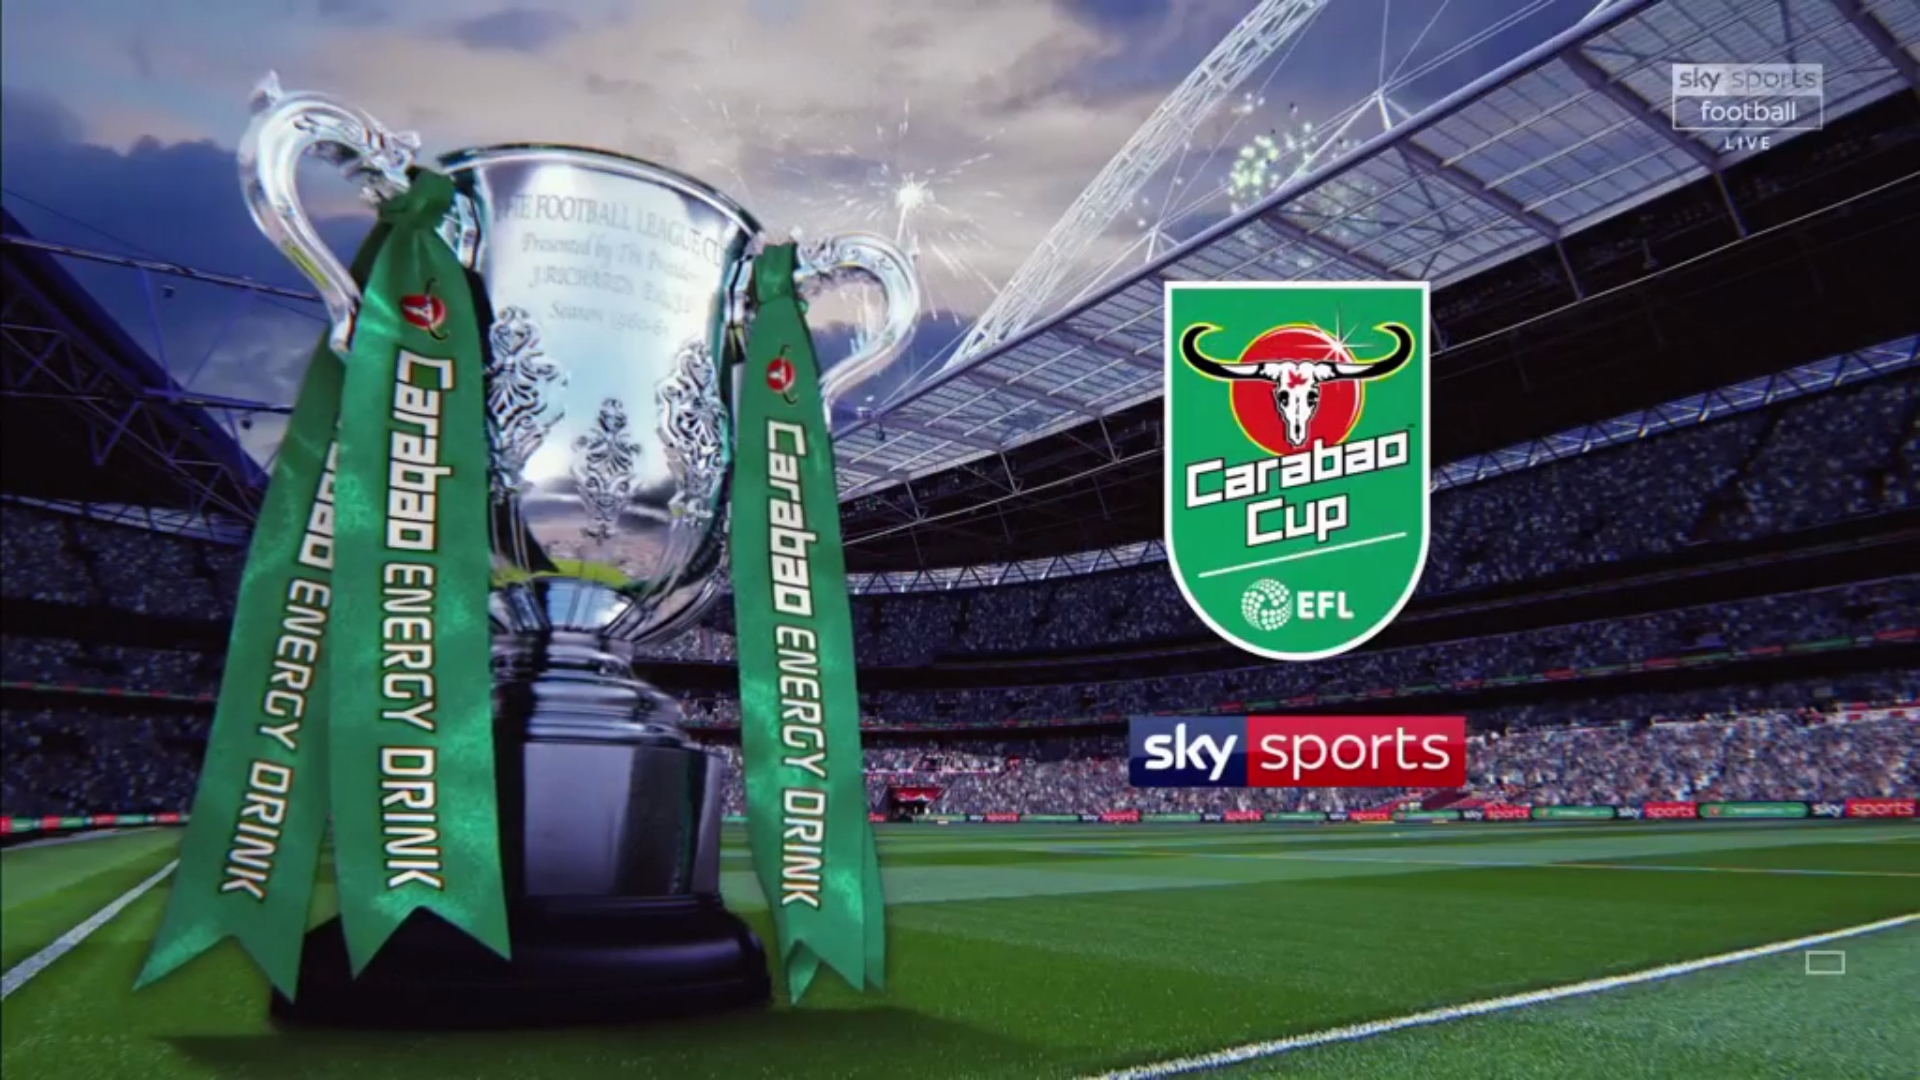 Carabao Cup 2019/20 – 3rd Round Draw – Live TV Coverage on Sky Sports